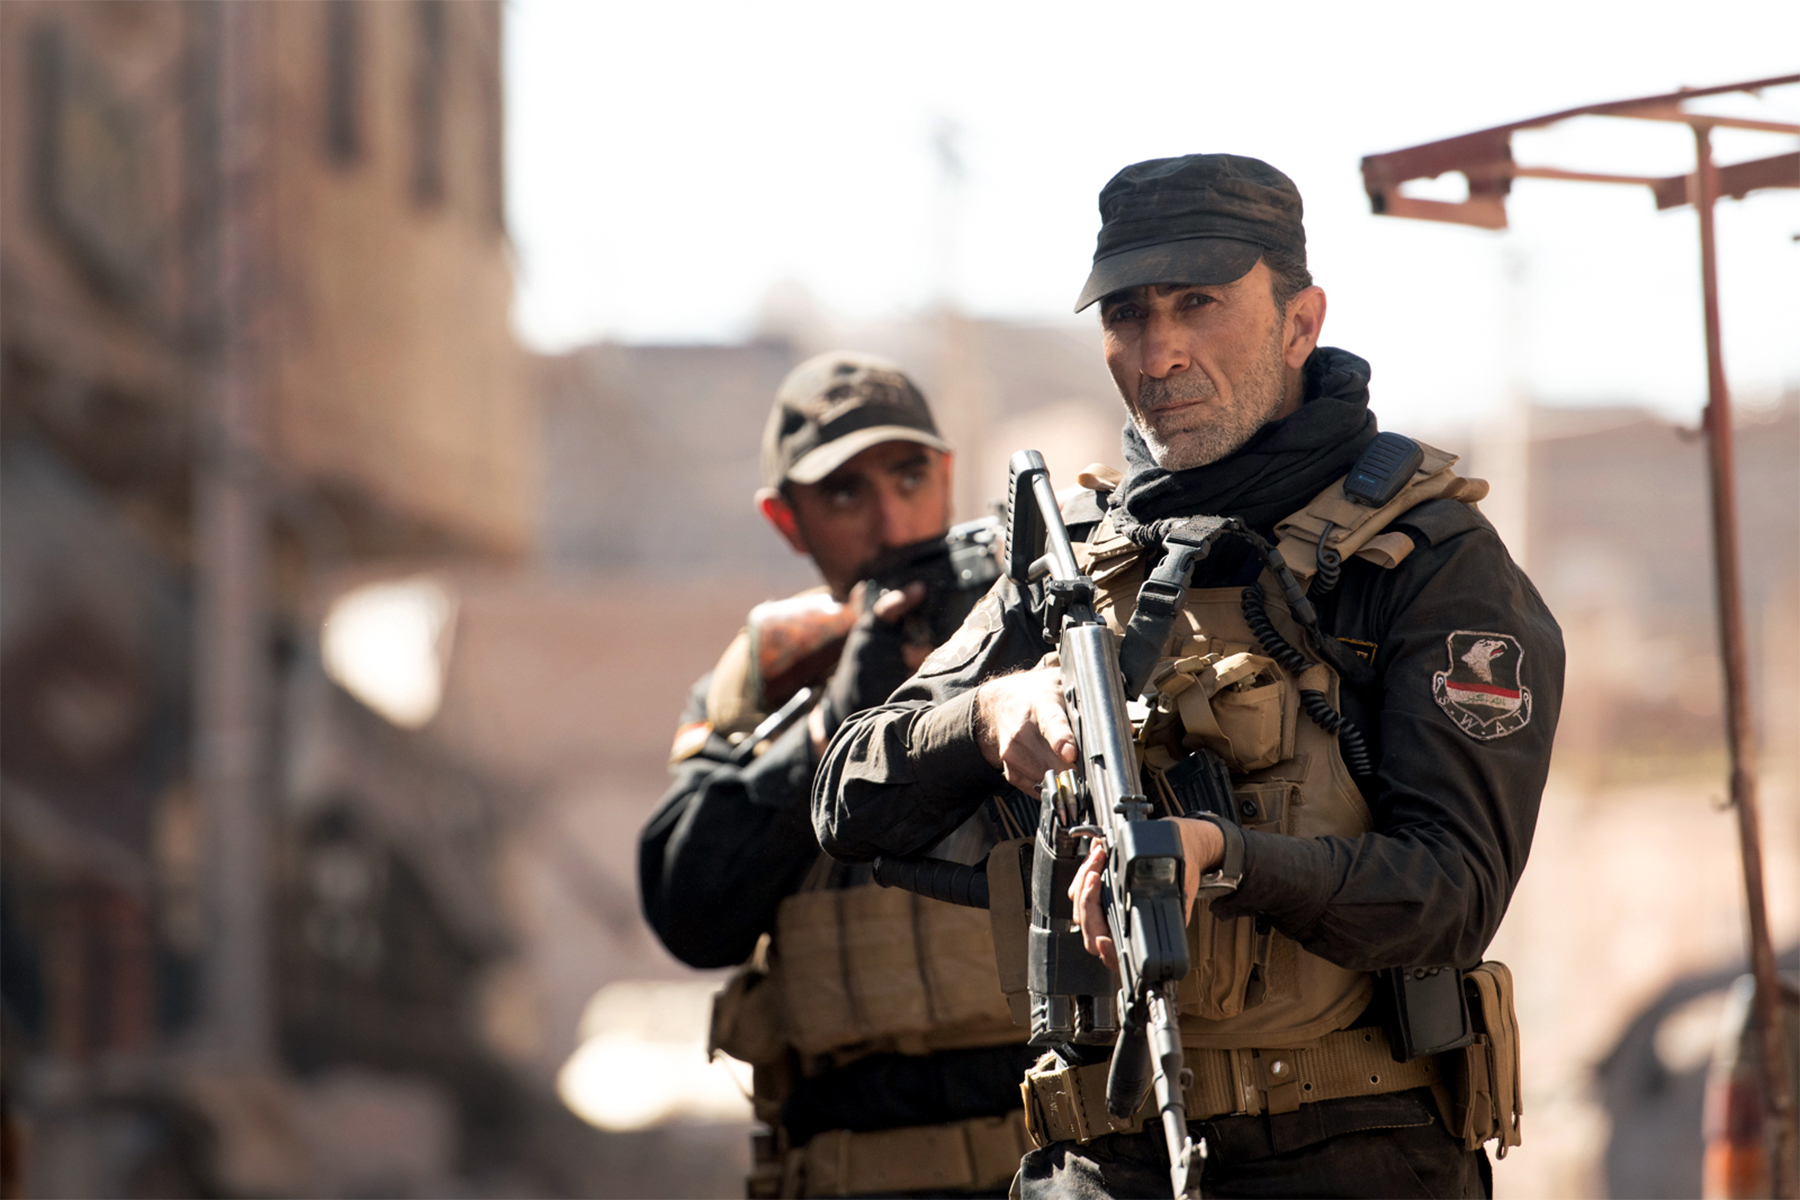 Iraqi SWAT Team Battles ISIS in New Trailer for Netflix's 'Mosul' - Rolling  Stone